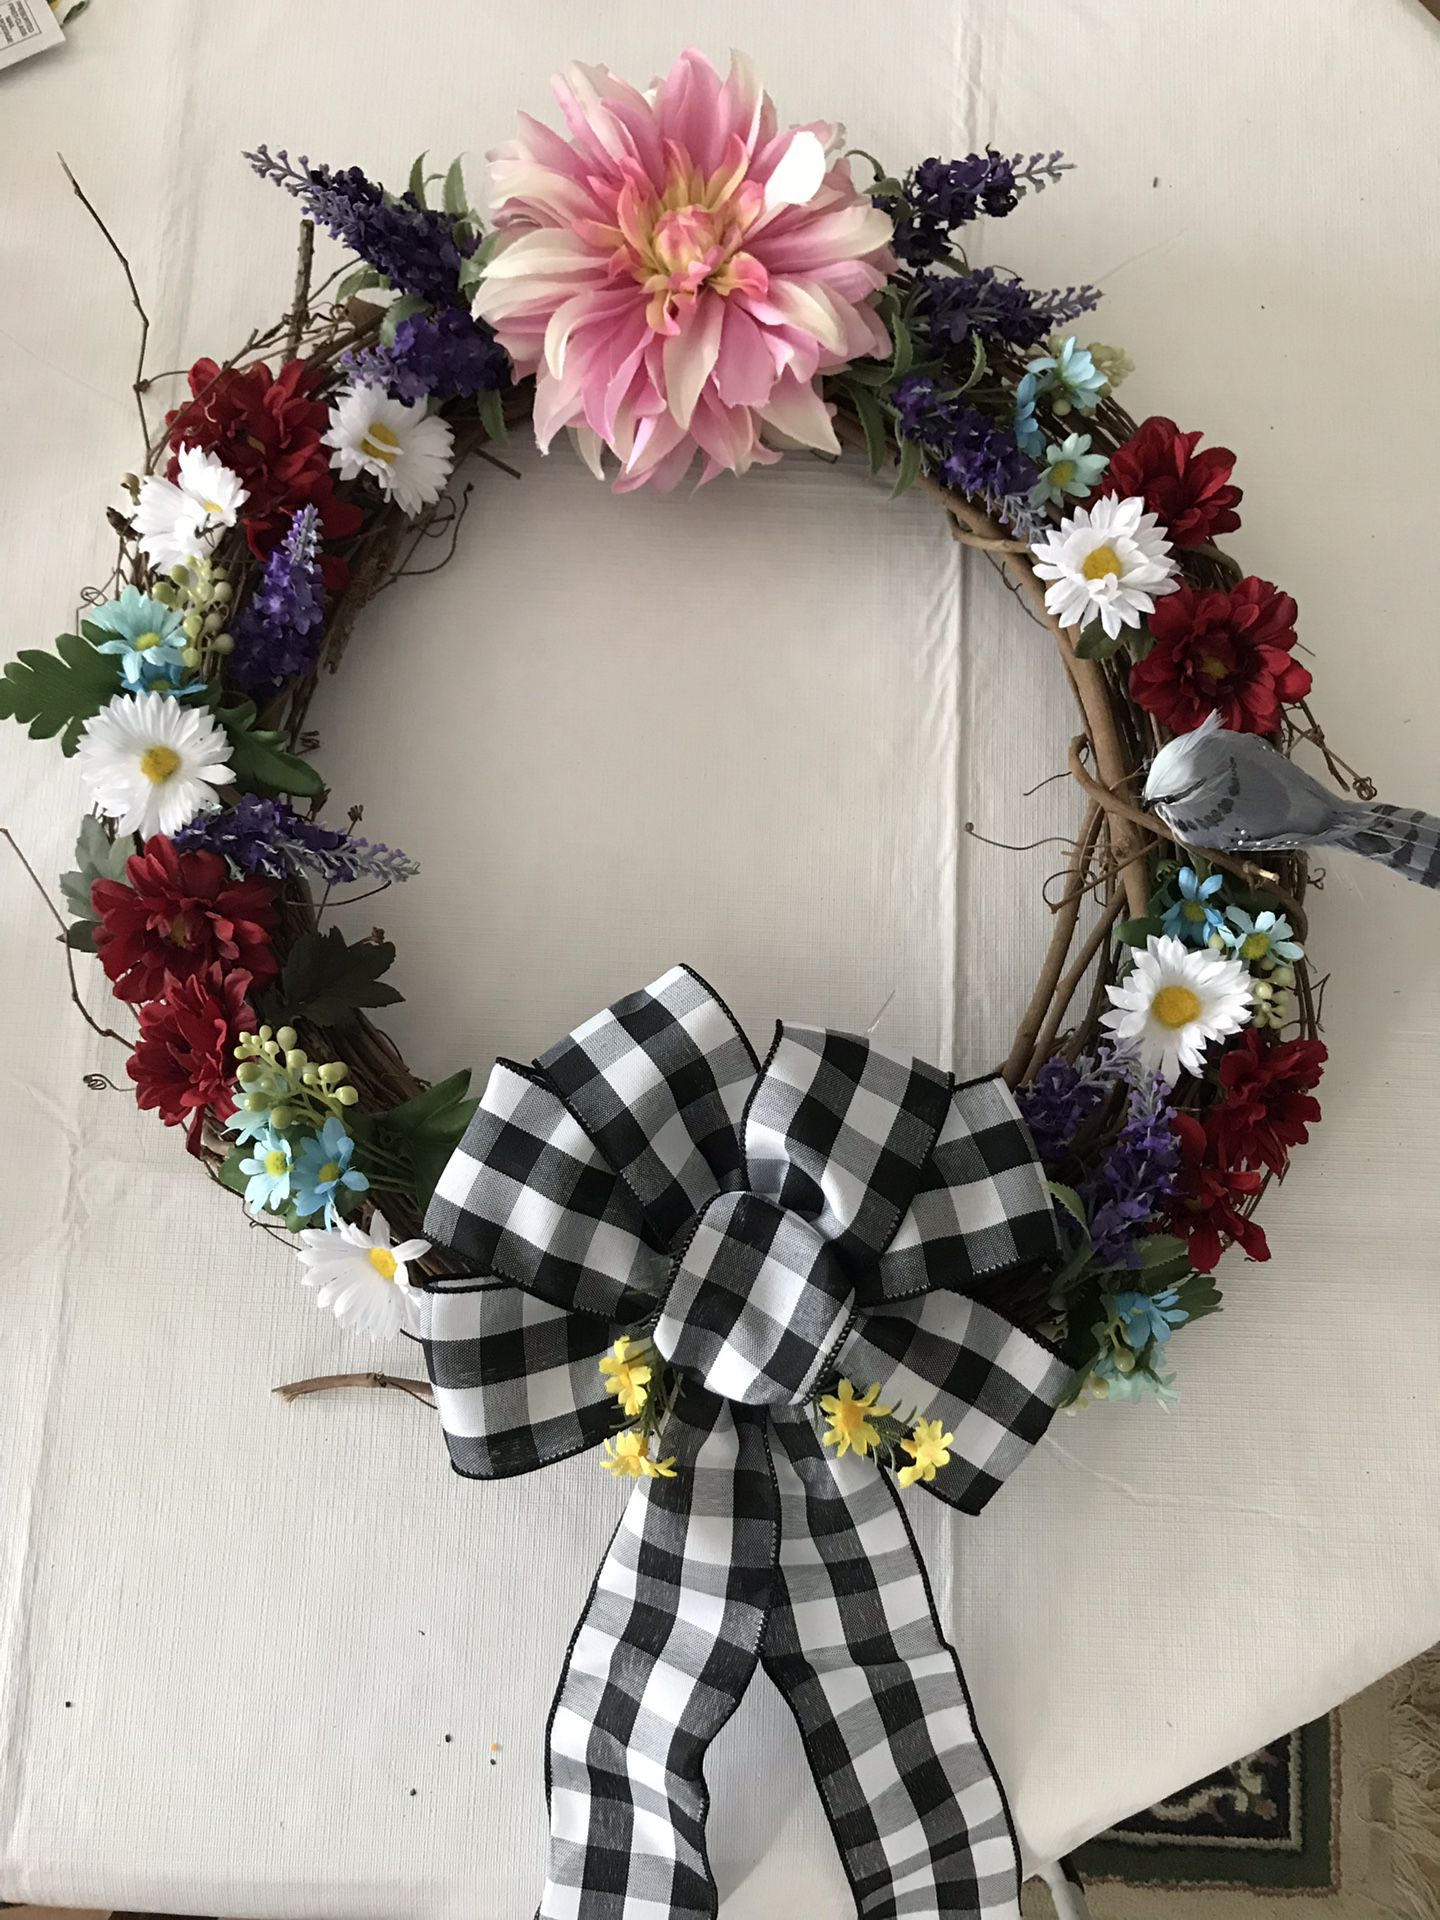 Beautiful grapevine wreath for summer